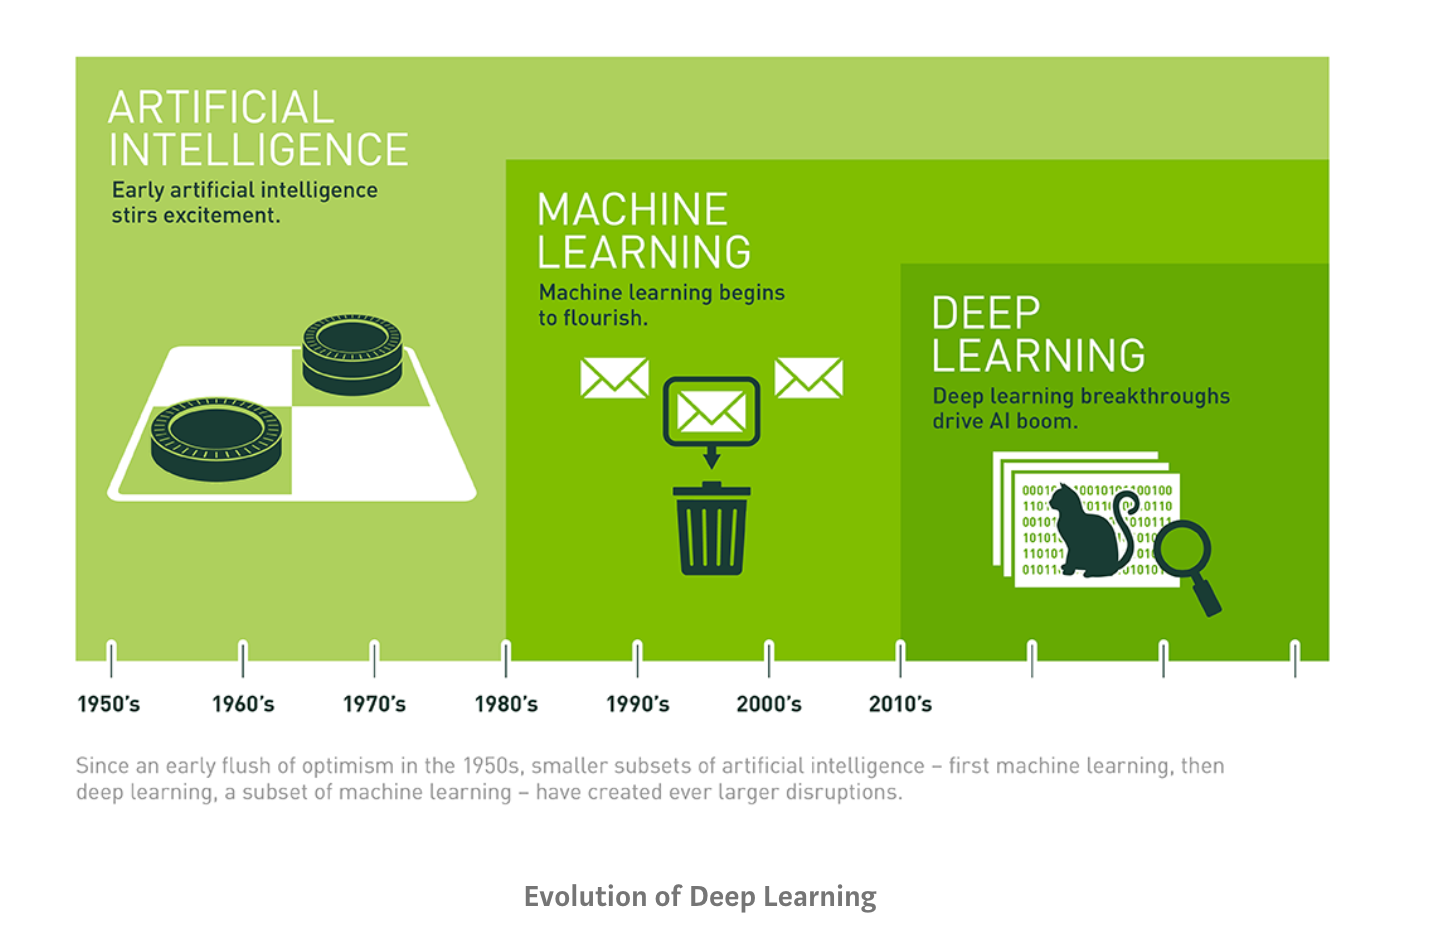 A diagram showing the progression from Artificial Intelligence, to Machine Learning, to Deep Learning from the 1950s to modern day.